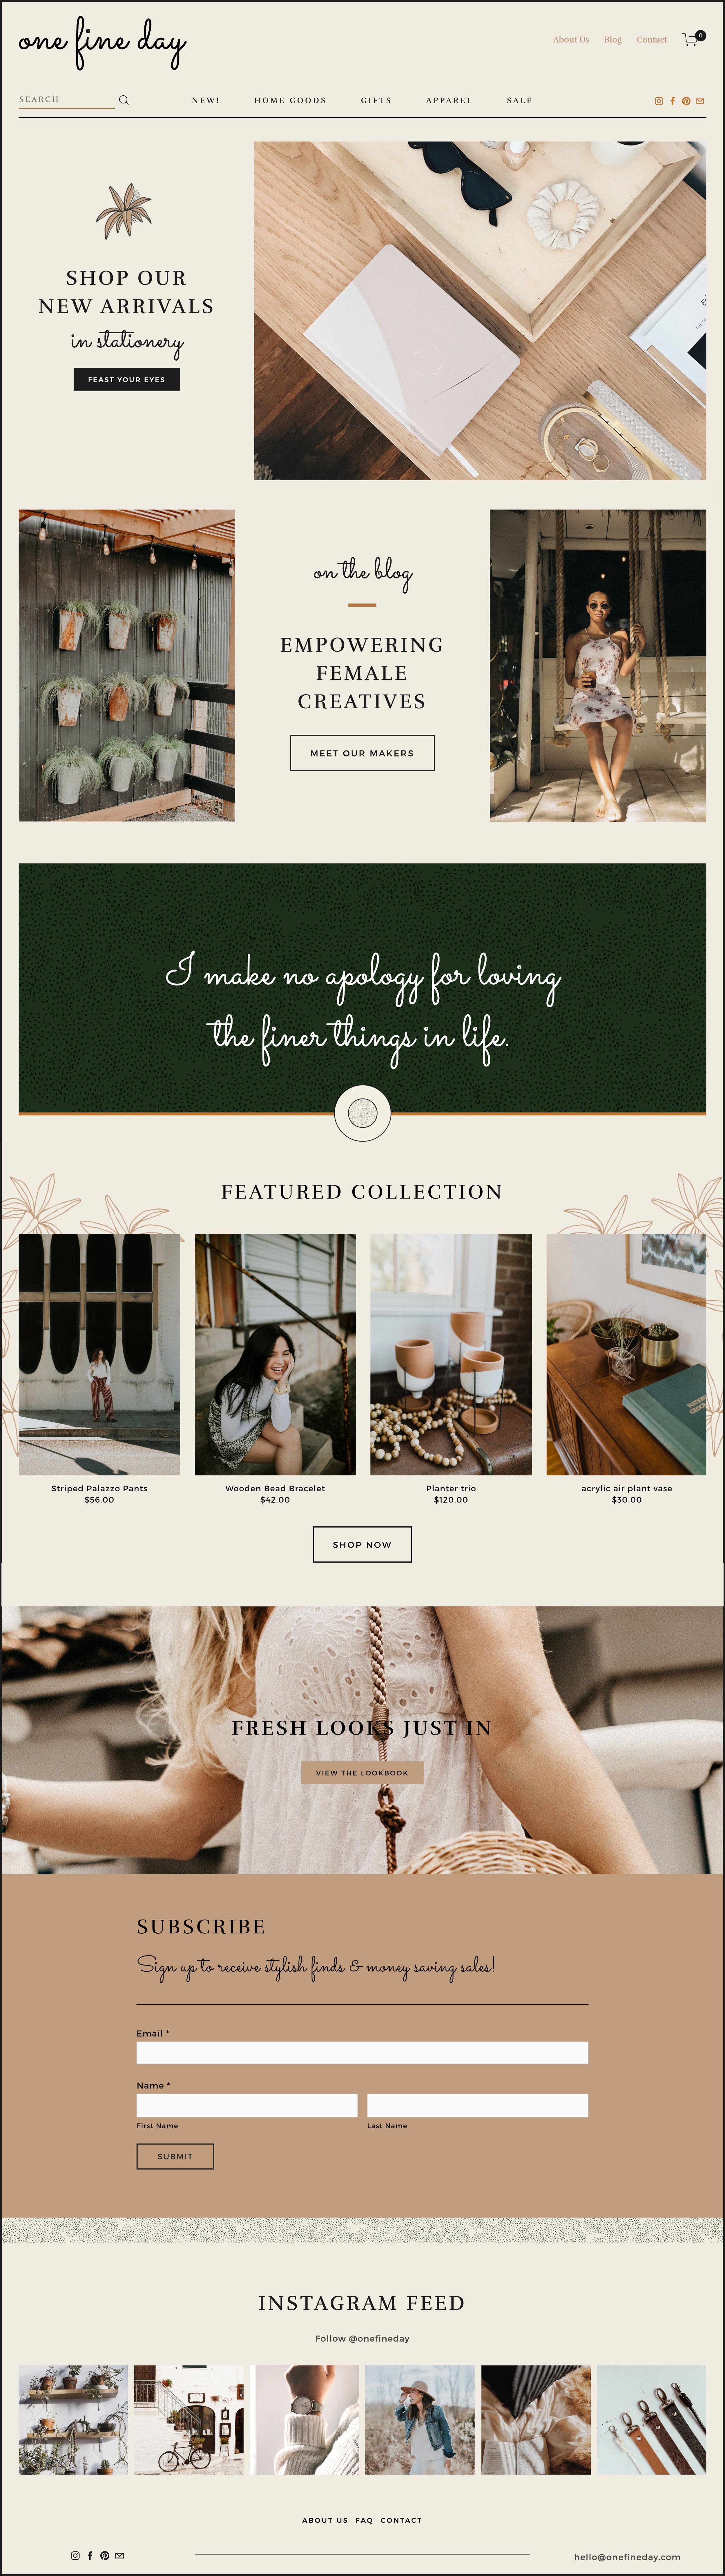 Earthy Muted And Organic Squarespace 7 0 Template Earthy Muted Organic Squarespace Web Design Inspiration Modern Web Design Website Design Inspiration